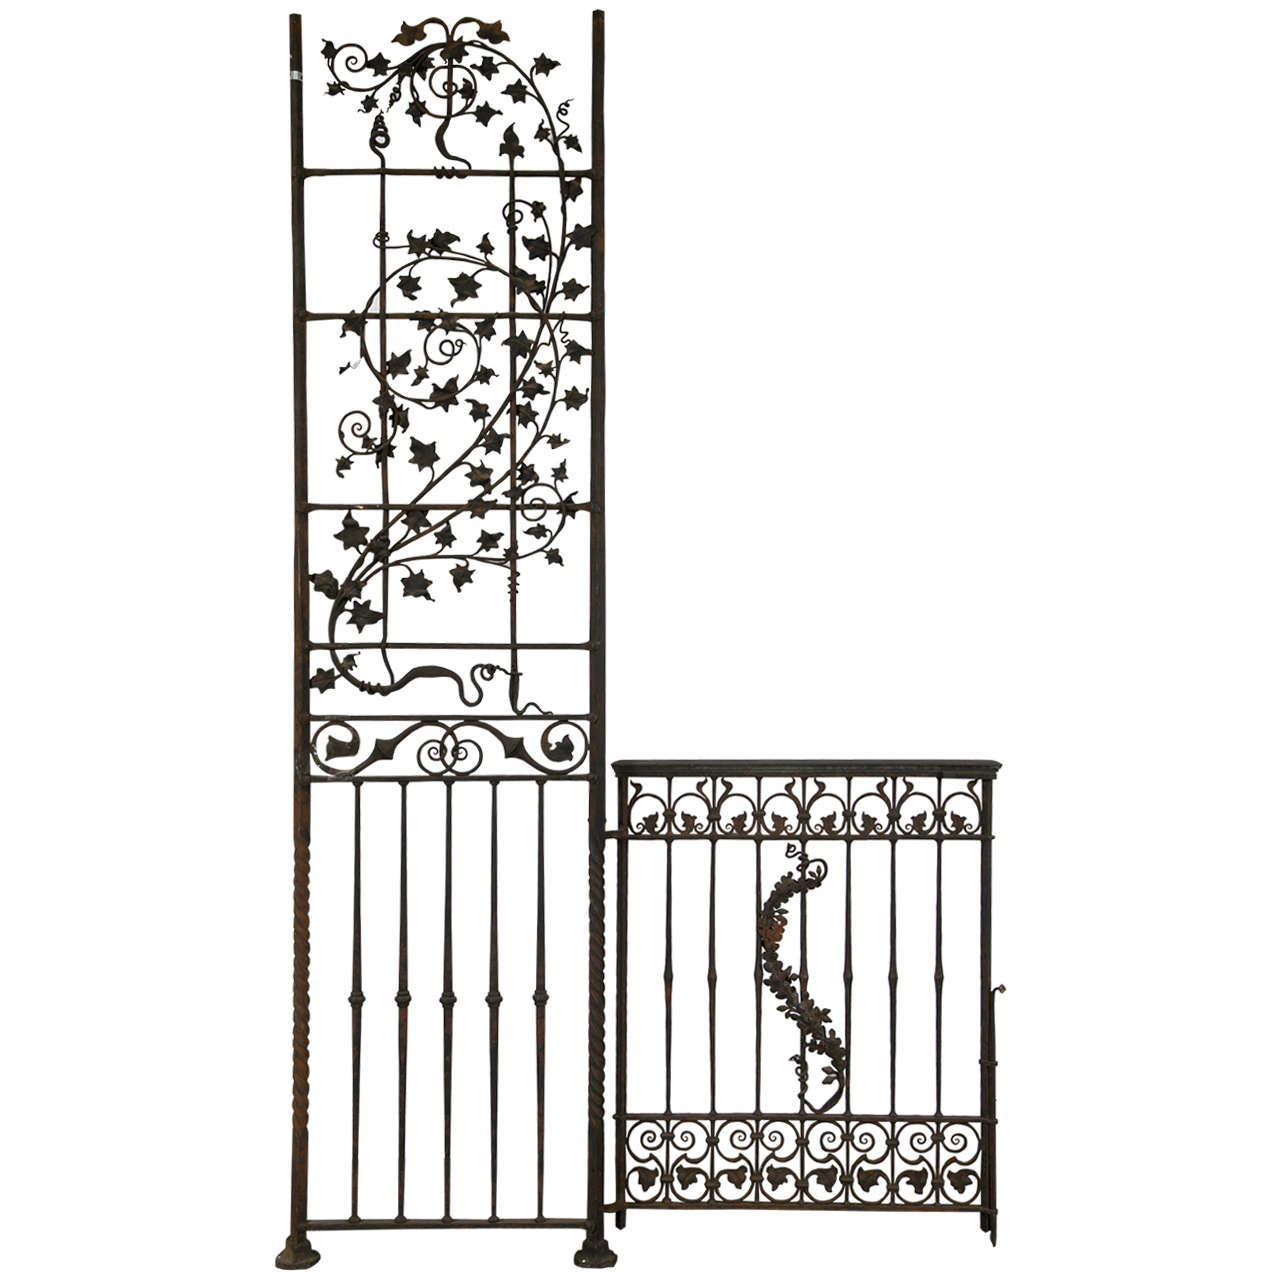 Antique Wrought iron Gates and Panels-Acorn Pattern For Sale